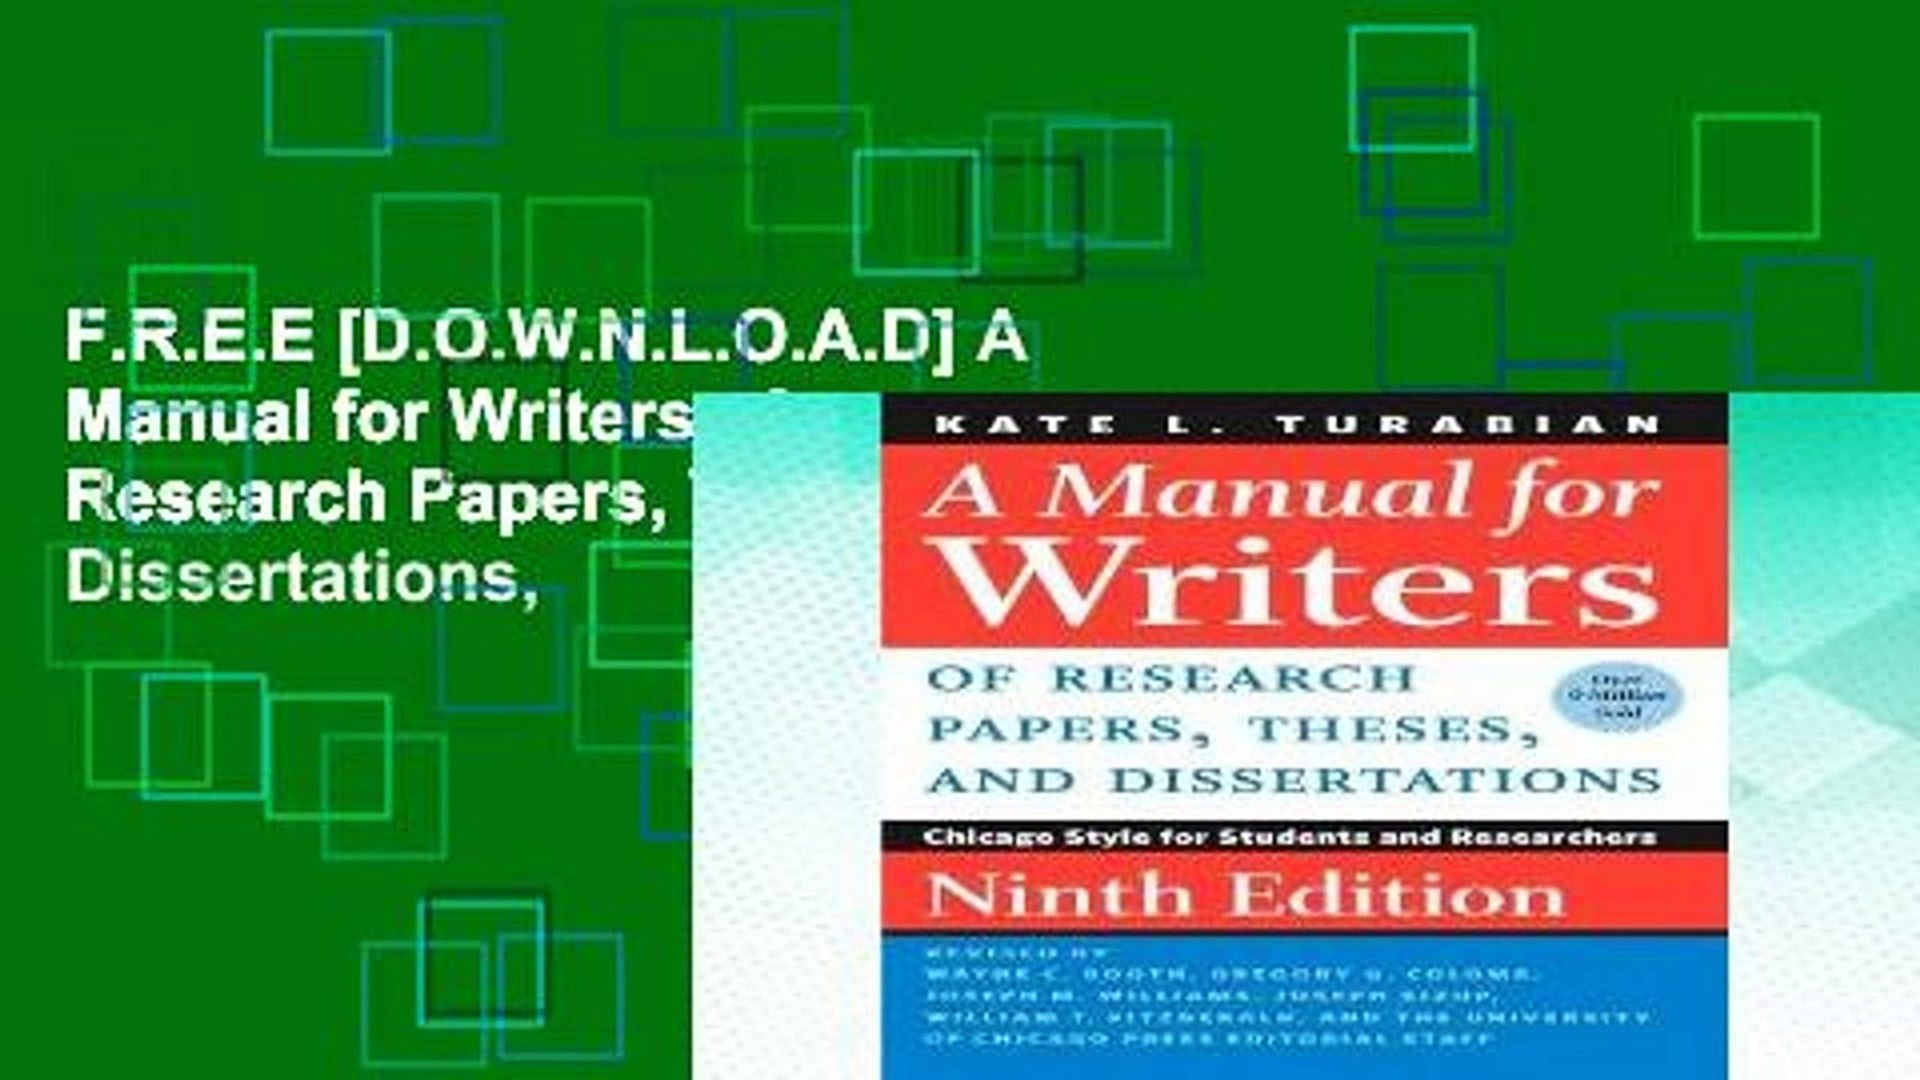 016 Manual For Writers Of Research Papers Theses And Dissertations Paper X1080 Sensational A Eighth Edition Pdf 9th 8th Full